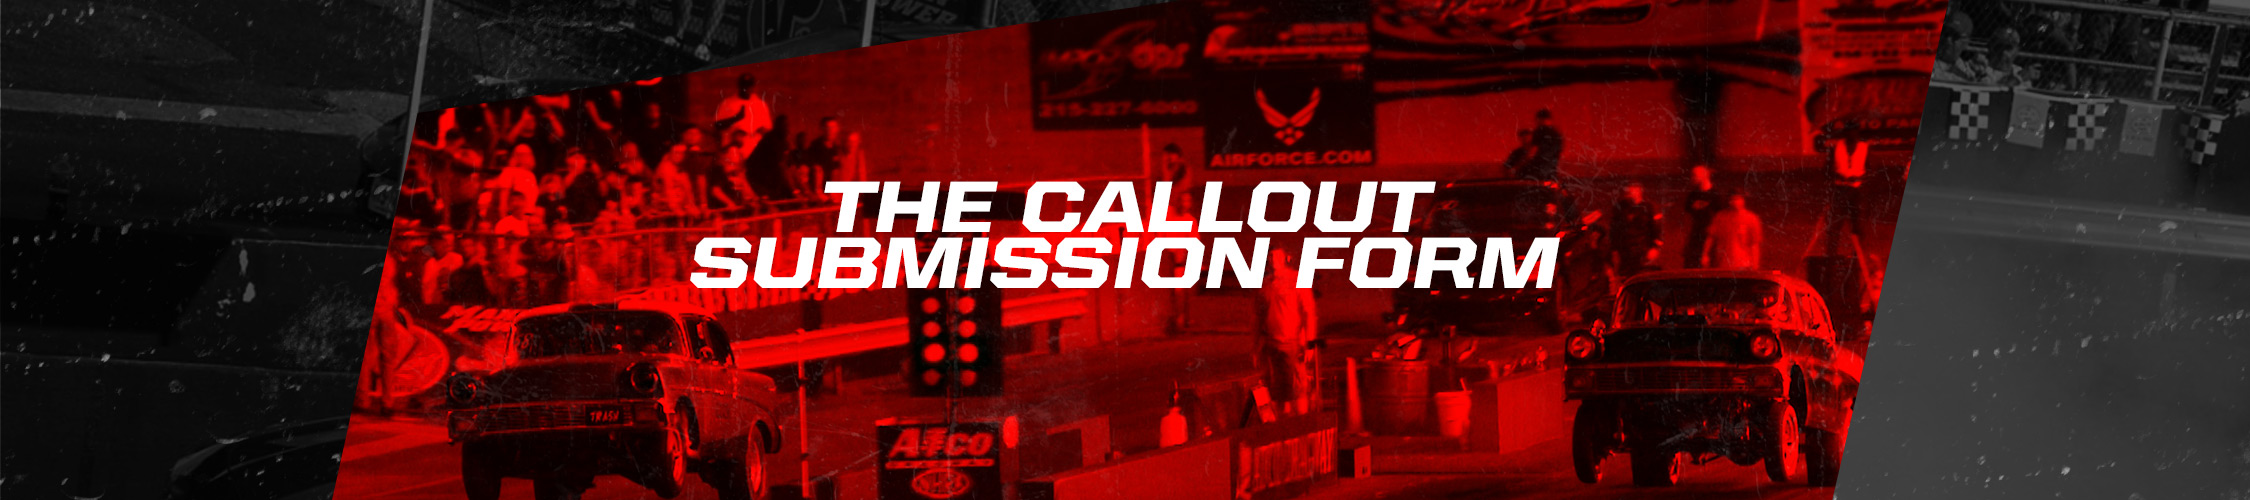 The Call Out Submission Form